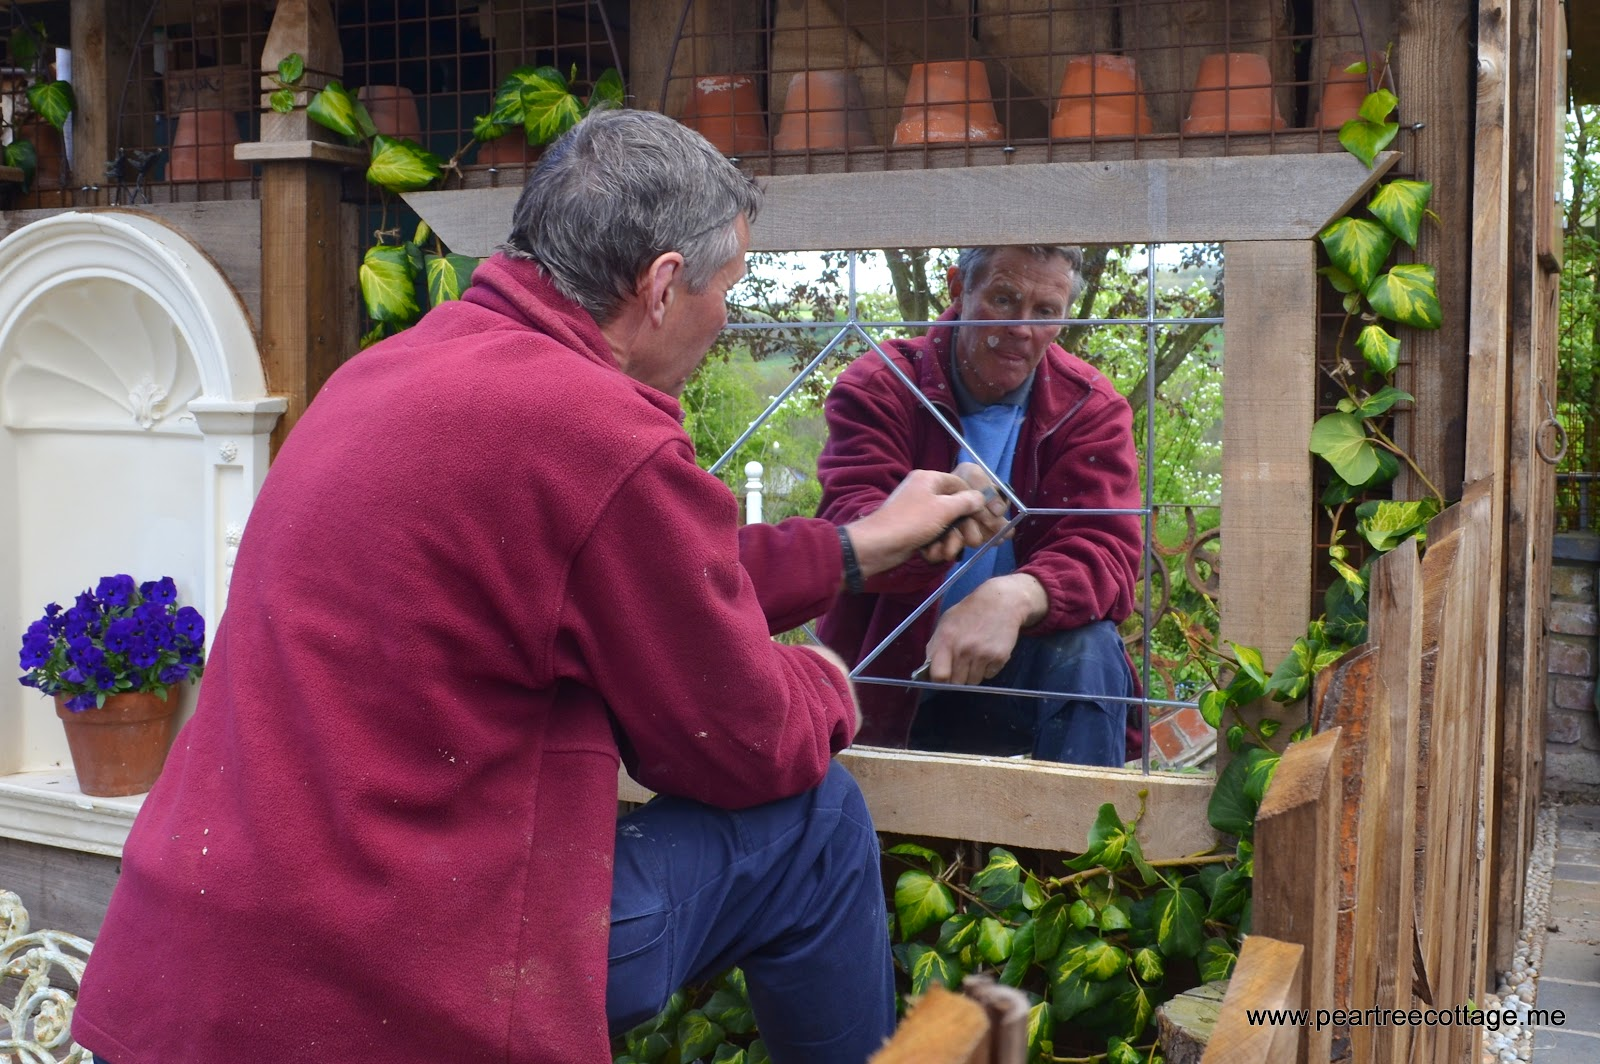 Stunning Pear Tree Cottage May  With Handsome Mirror Mirror On The Wall With Delightful Outdoor Garden Shelter Also Gardening Leave Letter In Addition Caleta Garden Apartments And Ants In The Garden As Well As Museum In Covent Garden Additionally Garden Storage Cabinets From Peartreecottageme With   Handsome Pear Tree Cottage May  With Delightful Mirror Mirror On The Wall And Stunning Outdoor Garden Shelter Also Gardening Leave Letter In Addition Caleta Garden Apartments From Peartreecottageme